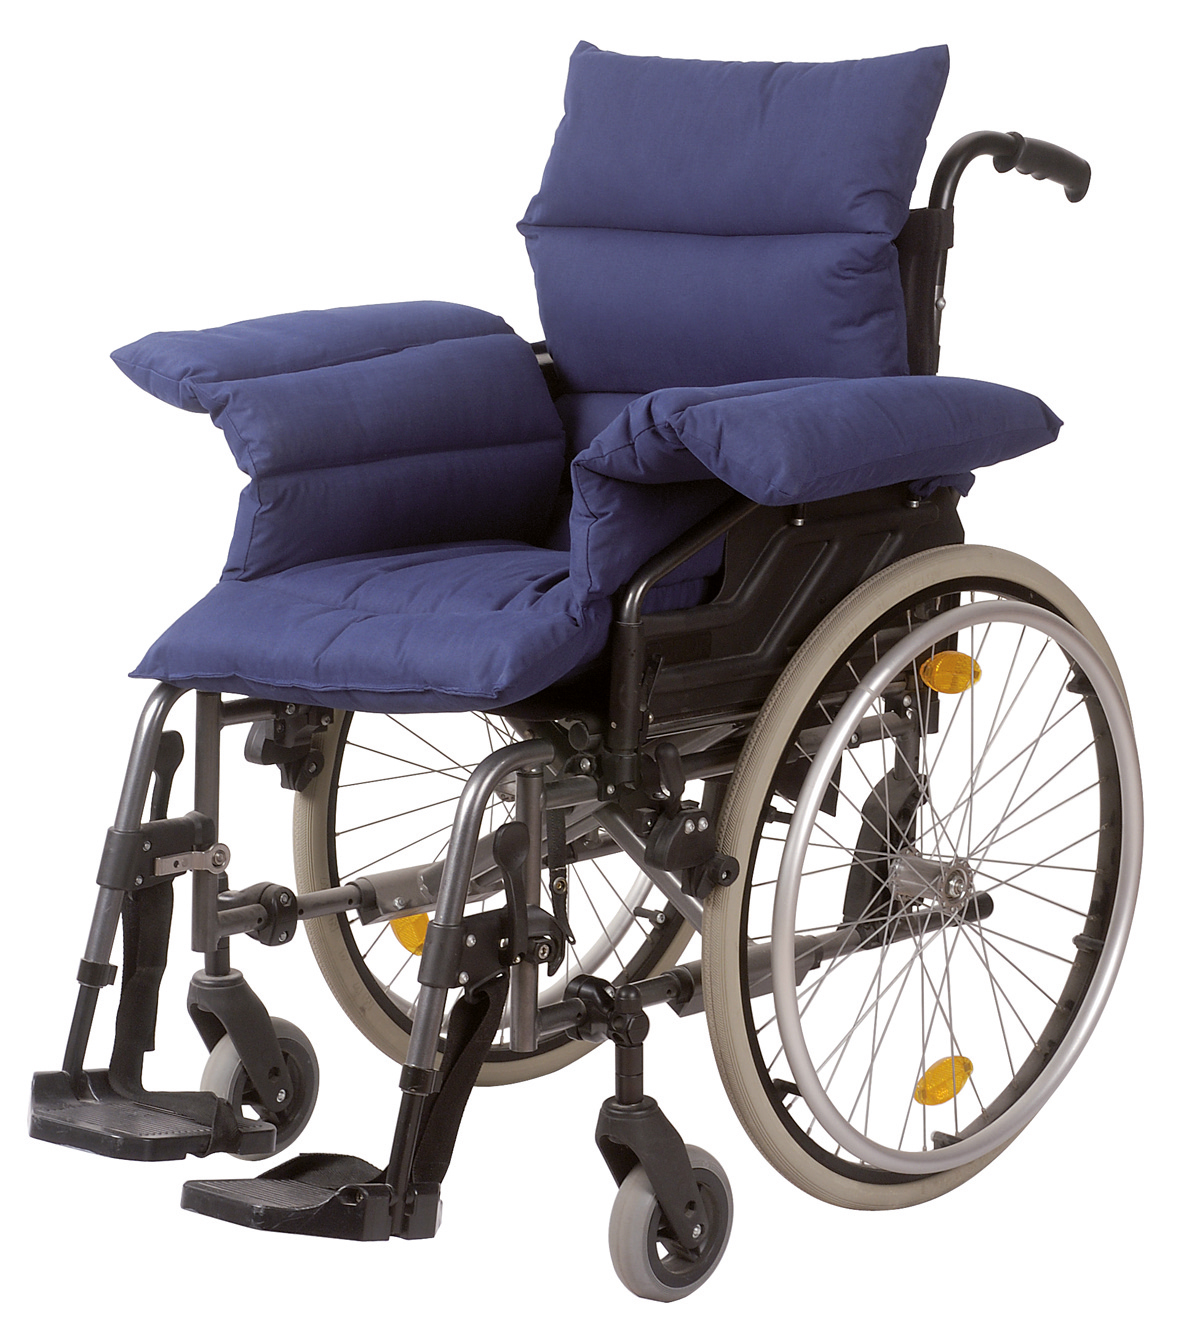 chair with accessories the x wheel wheelchair accessory from